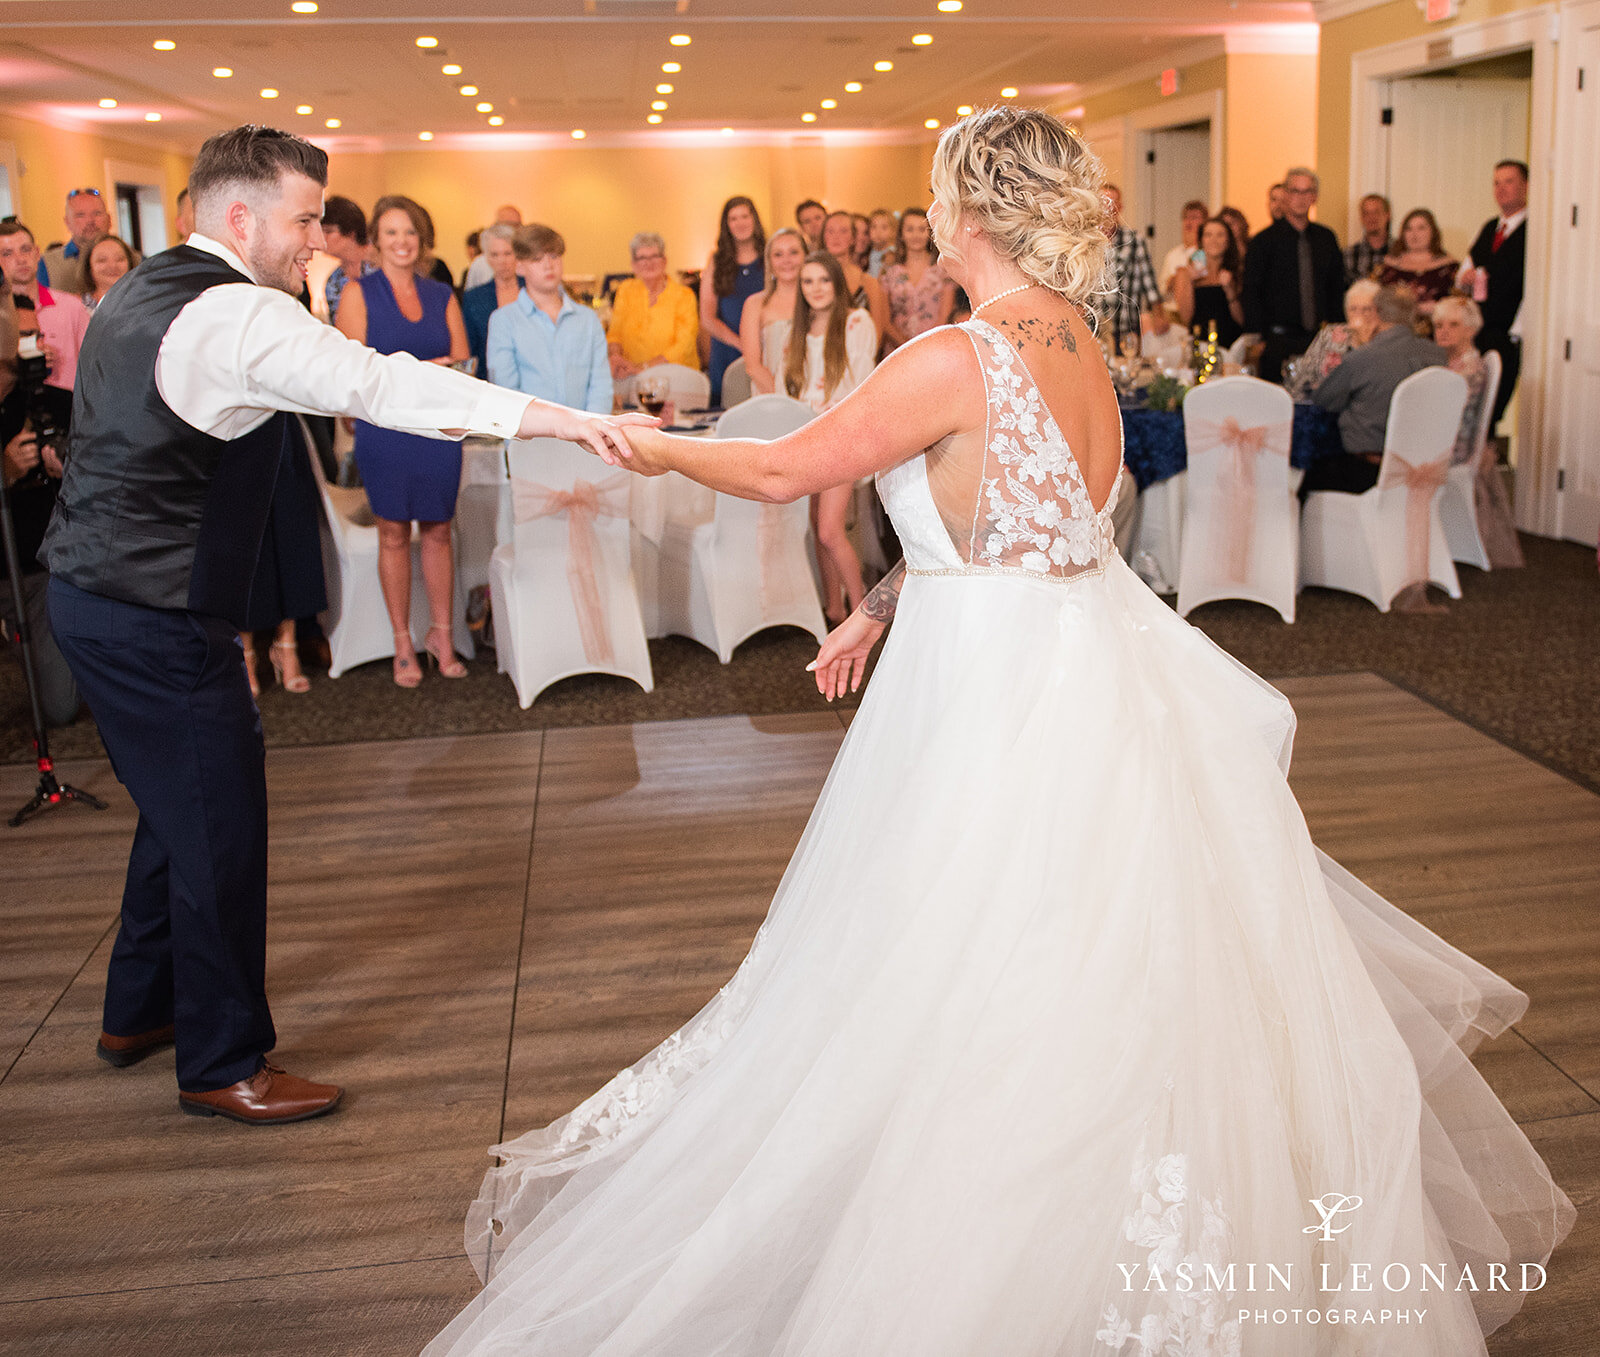 Brittnee and Tyler - Yasmin Leonard Photography-43_websize.jpg